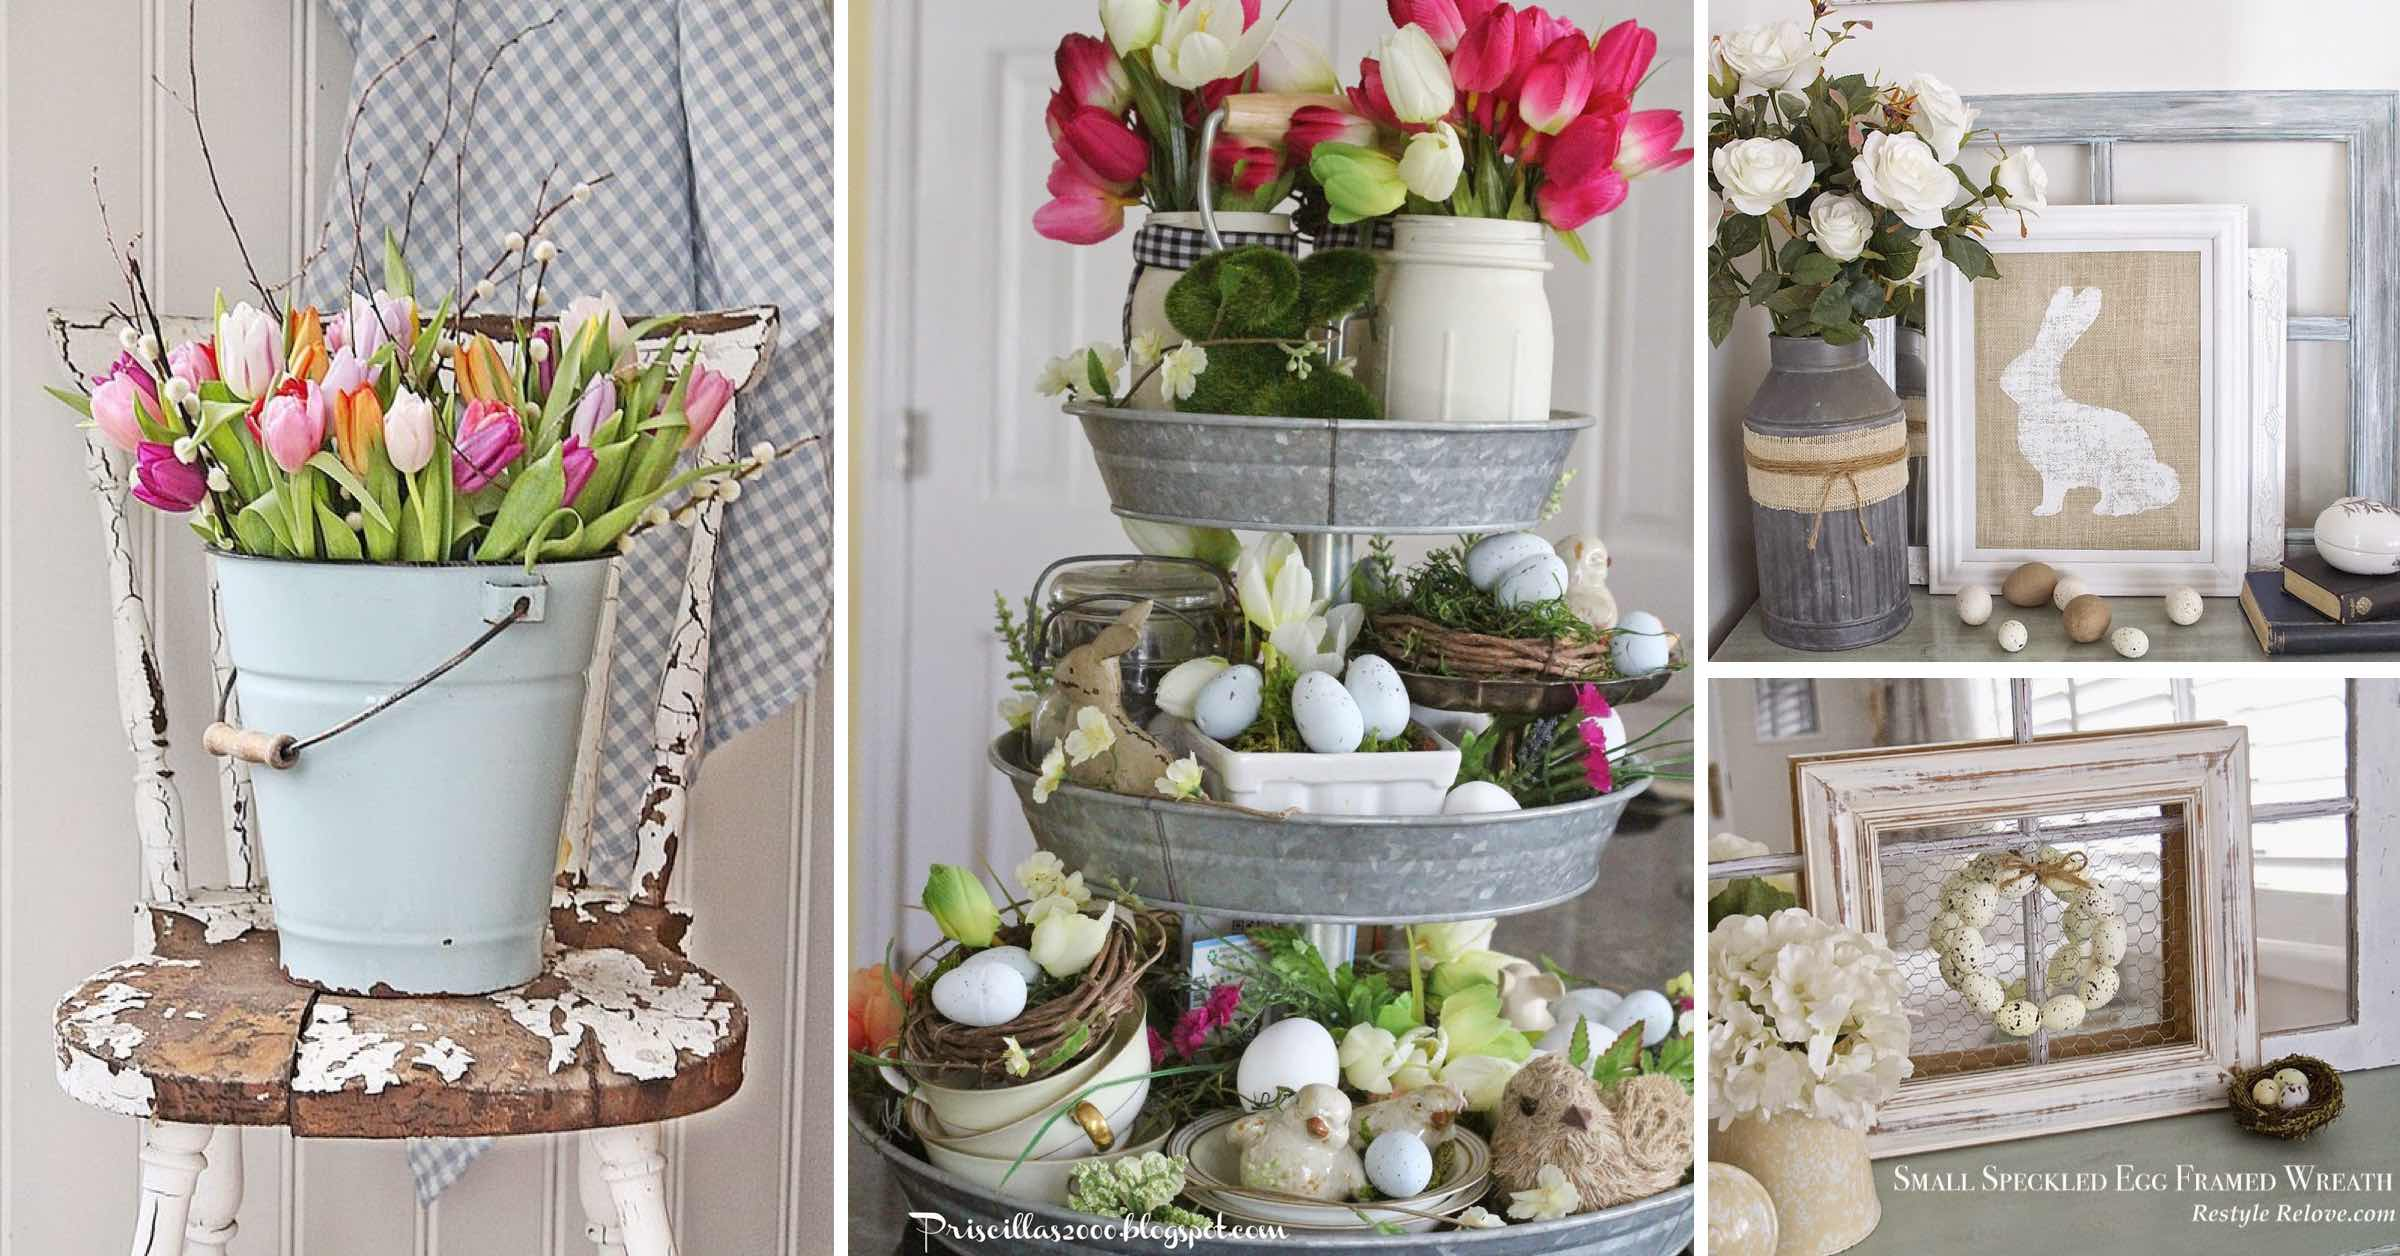 20 rustic easter decorations bringing a farmhouse appeal - Home interior decoration ideas ...